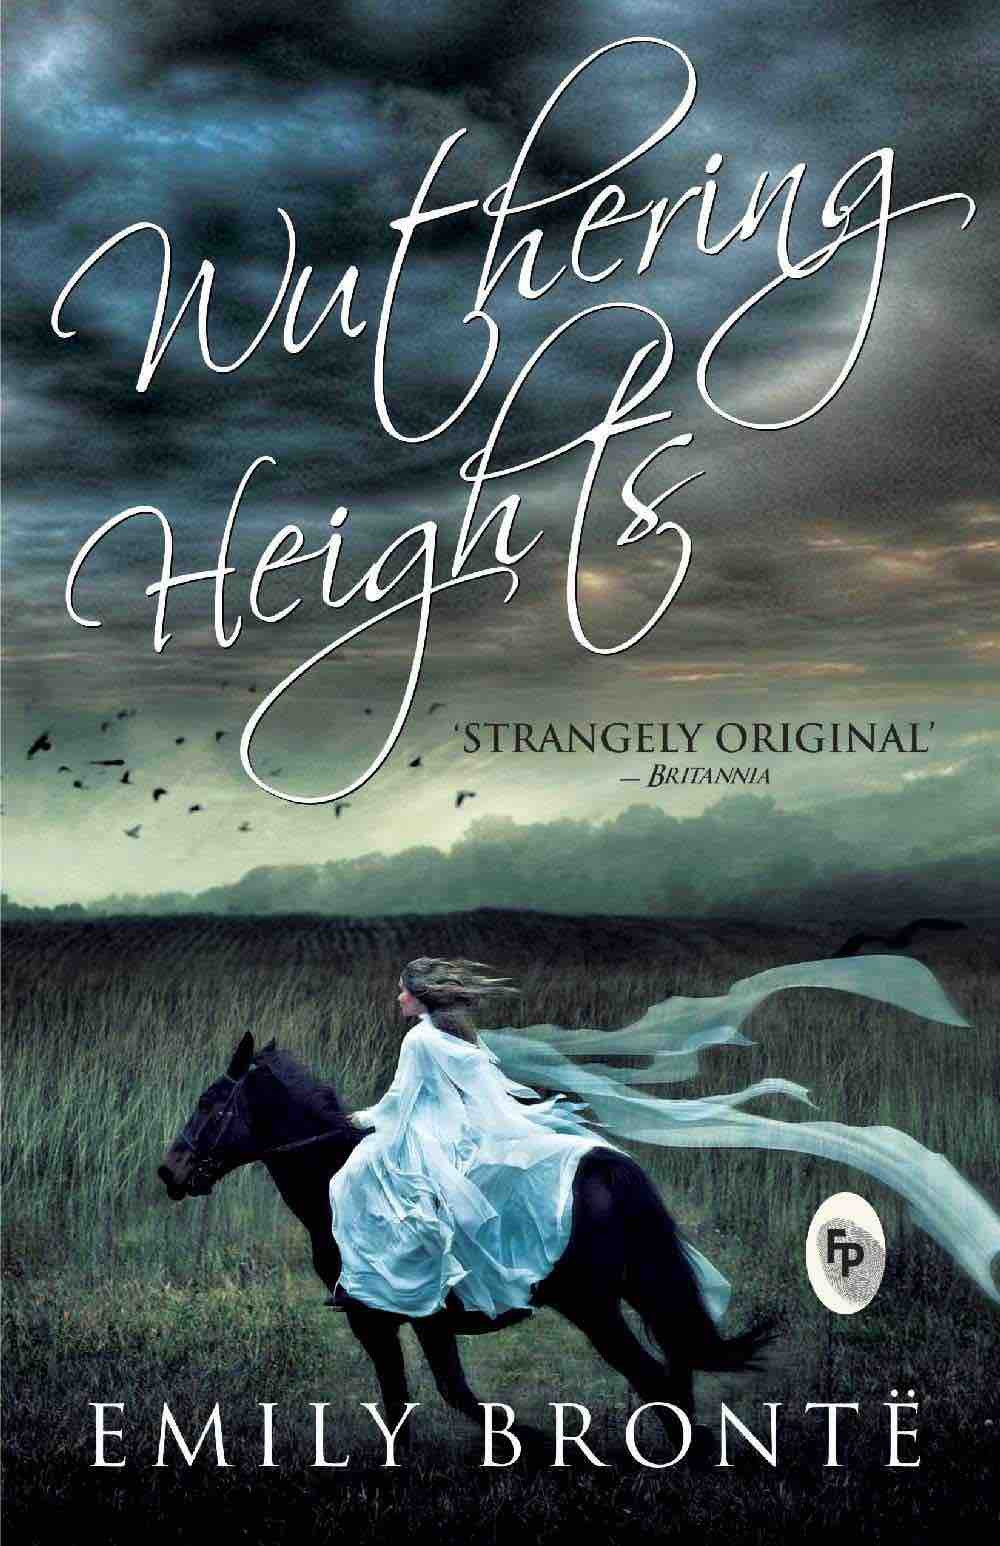 Wuthering Heights: Epic Story of Love, Envy, Betrayal And Revenge